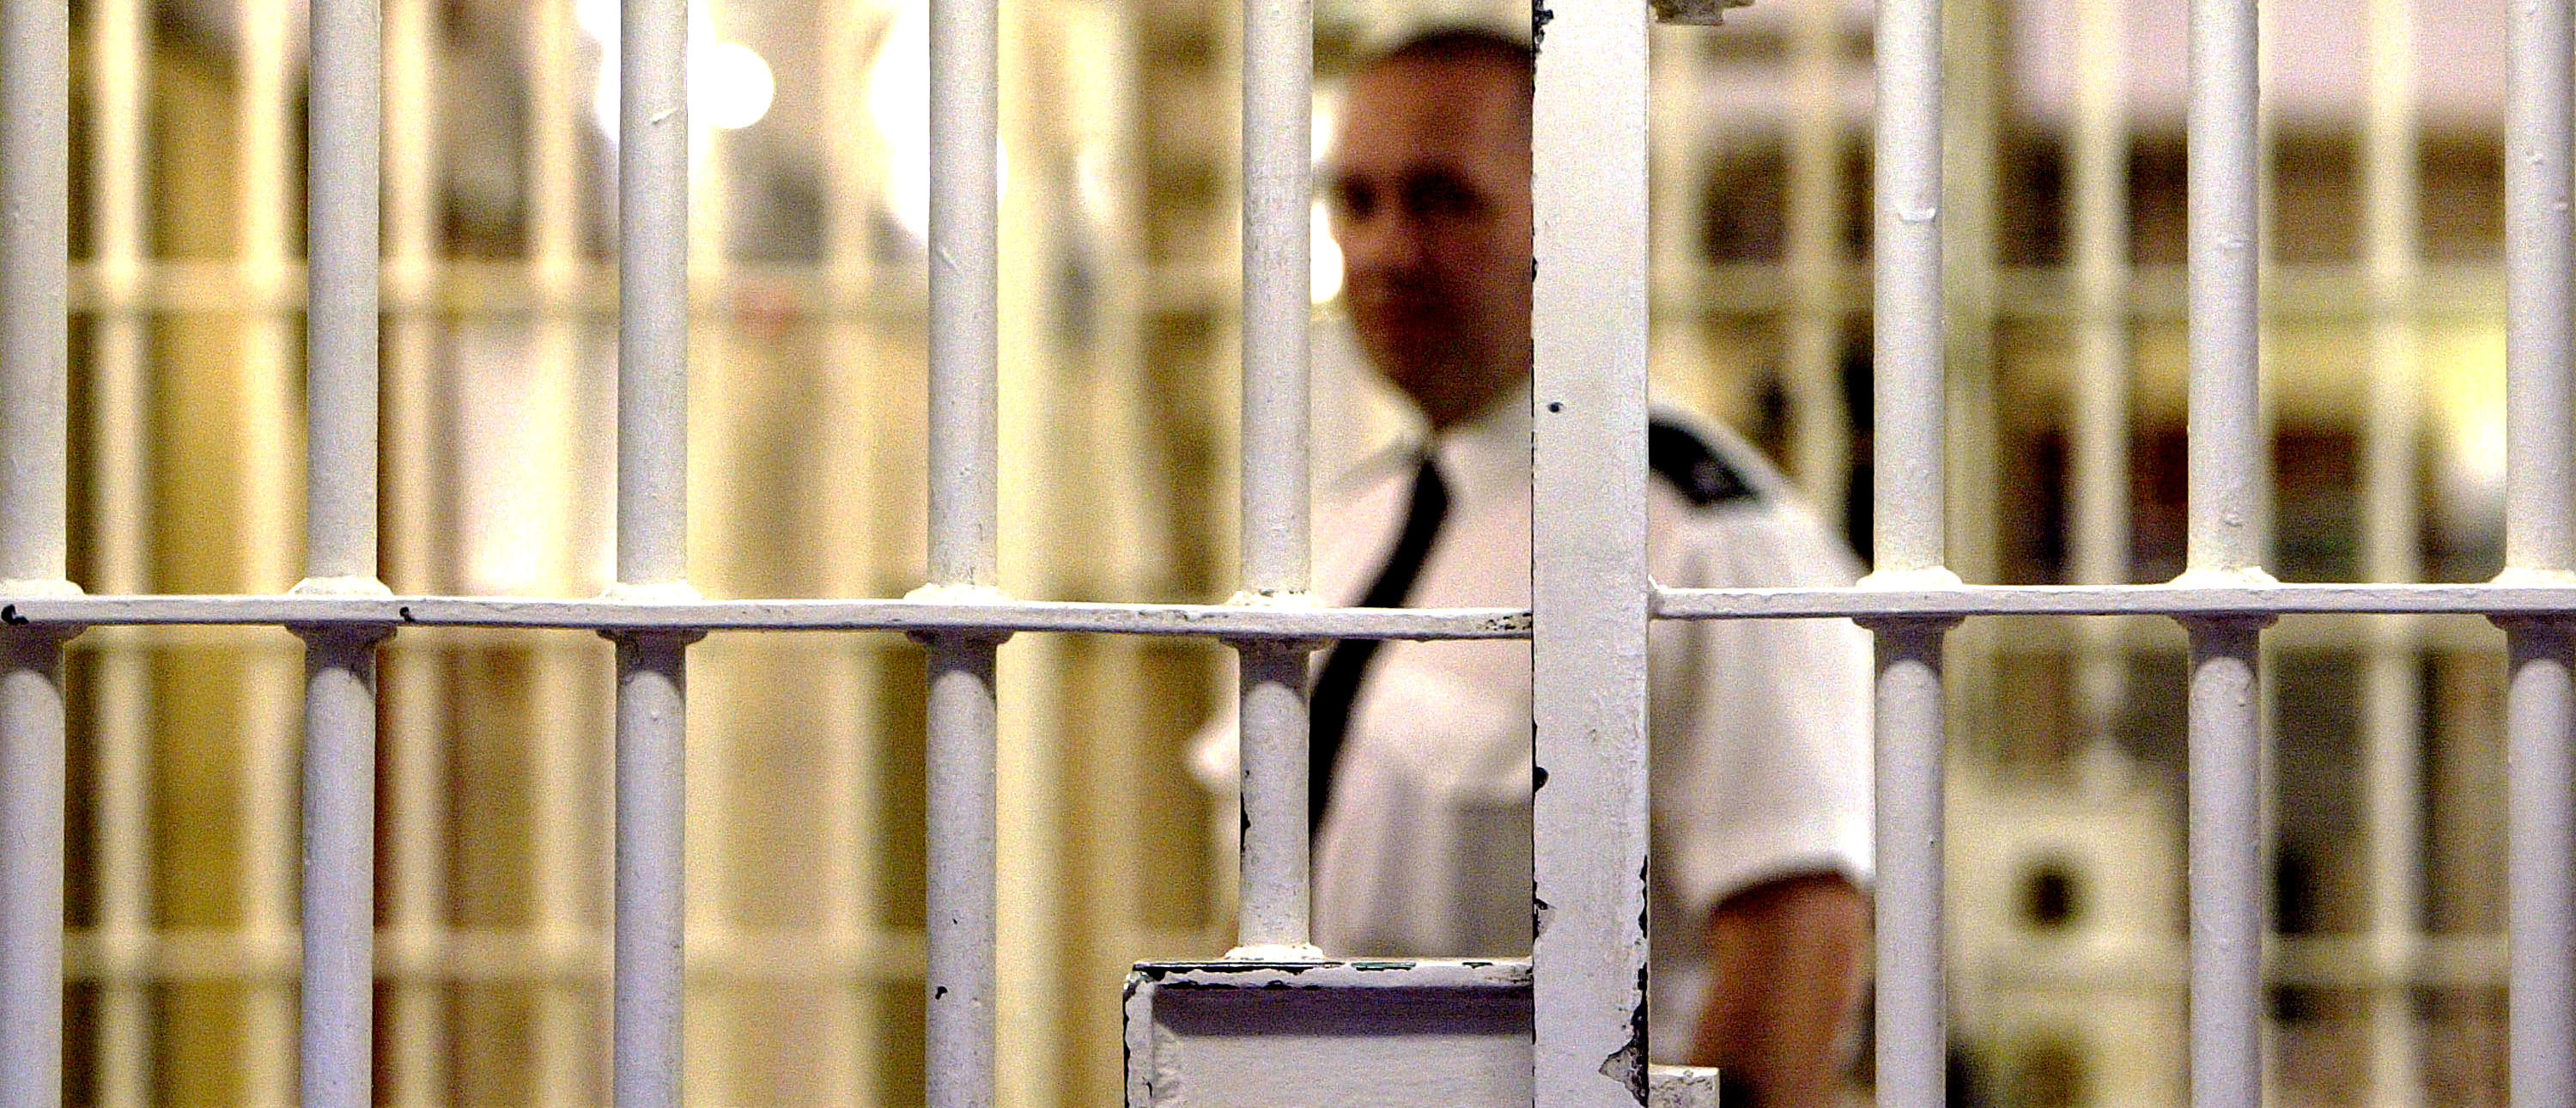 LONDON - MAY 19: (FILE PHOTO) A prison guard at HMP (Her Majesty's Prison) Pentonville stands behind a locked gate May 19, 2003 in London. A new report from the Prison Reform Trust (PRT) says overcrowding in Britain's prisons has been caused by tougher sentencing rather than an increase in crime. Since 1991, offenders of petty crimes are three times more likely to be imprisoned. (Photo by Ian Waldie/Getty Images)